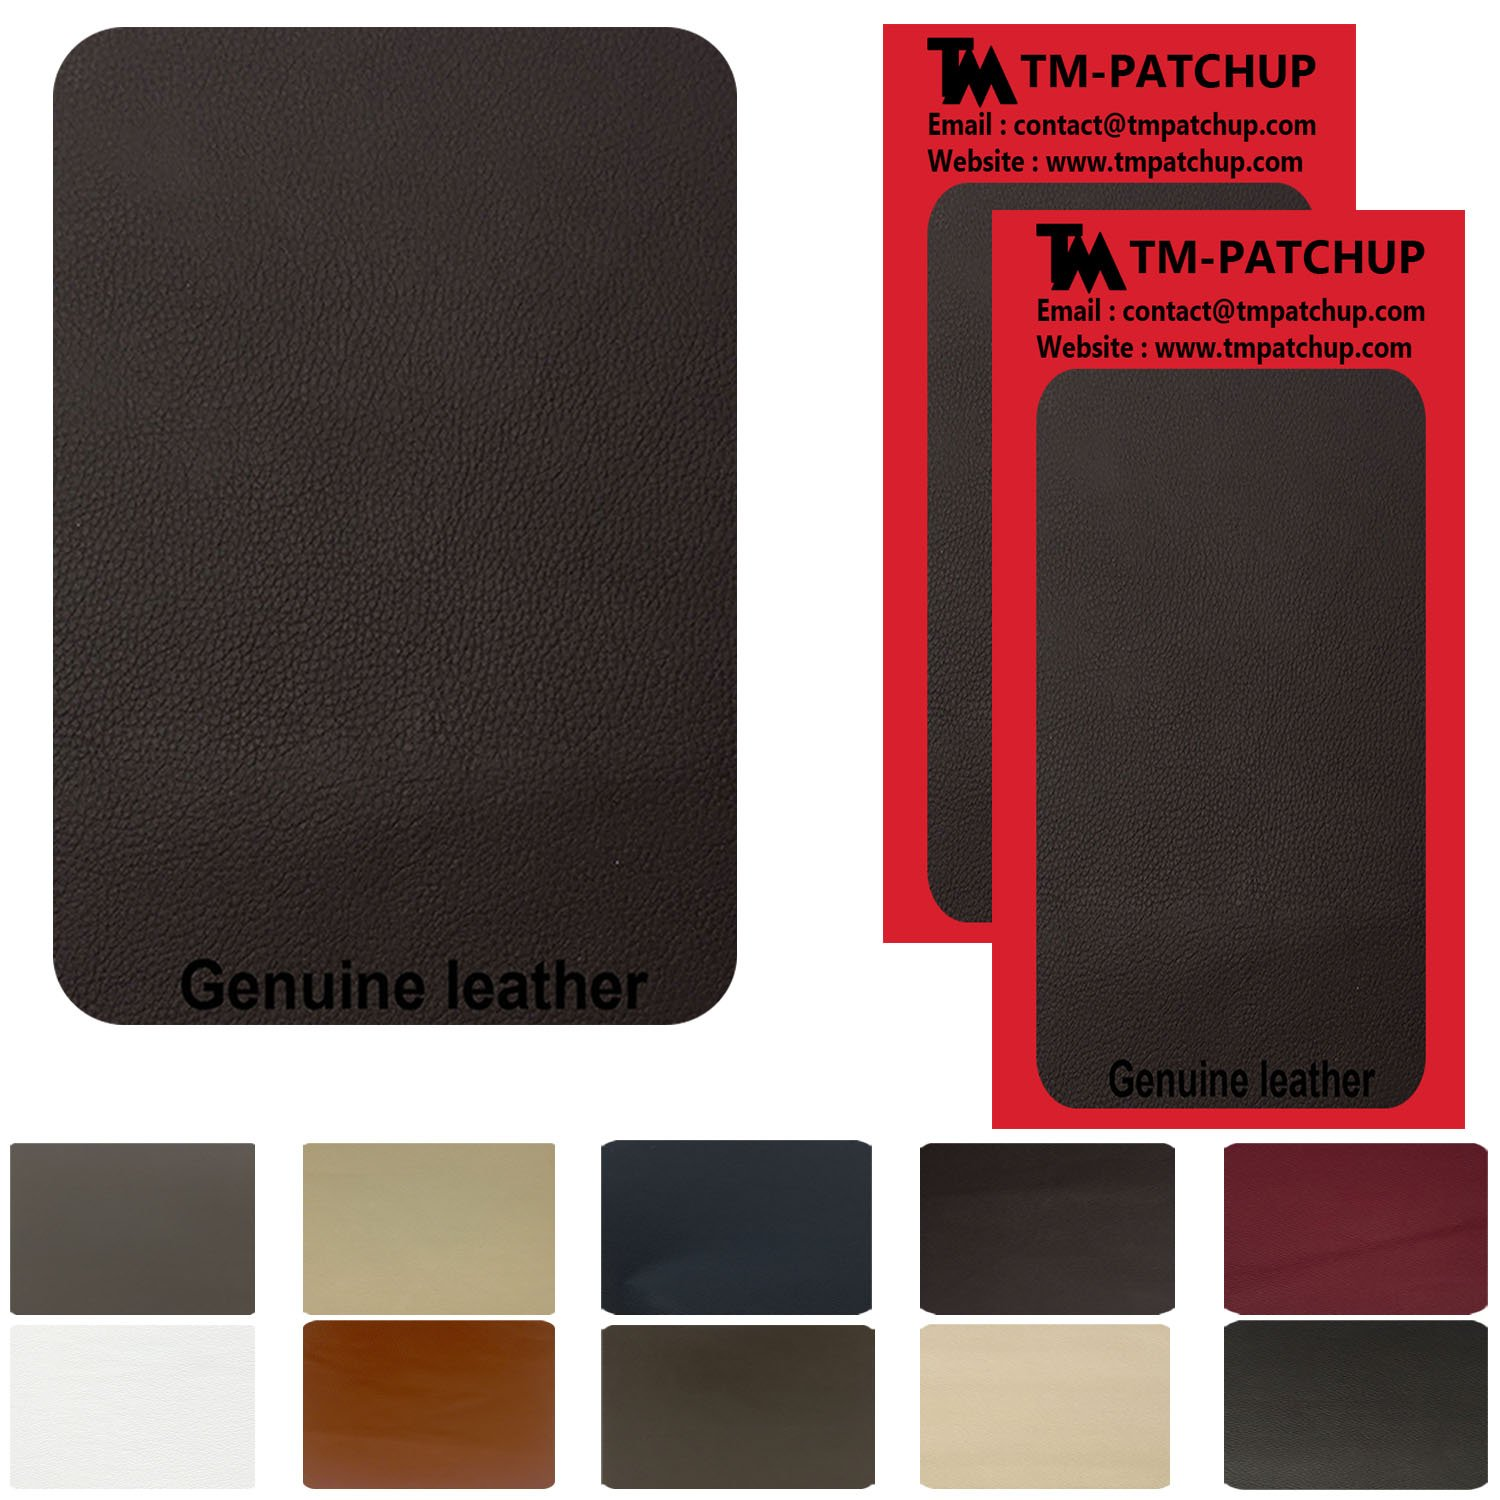 2 Pieces Dark Brown Leather and Vinyl repair patch by TMgroup, genuine faux leather repair patch, peel and stick for couch, sofas, car seats, hand bags,furniture, jackets, large size 3'' x 6''